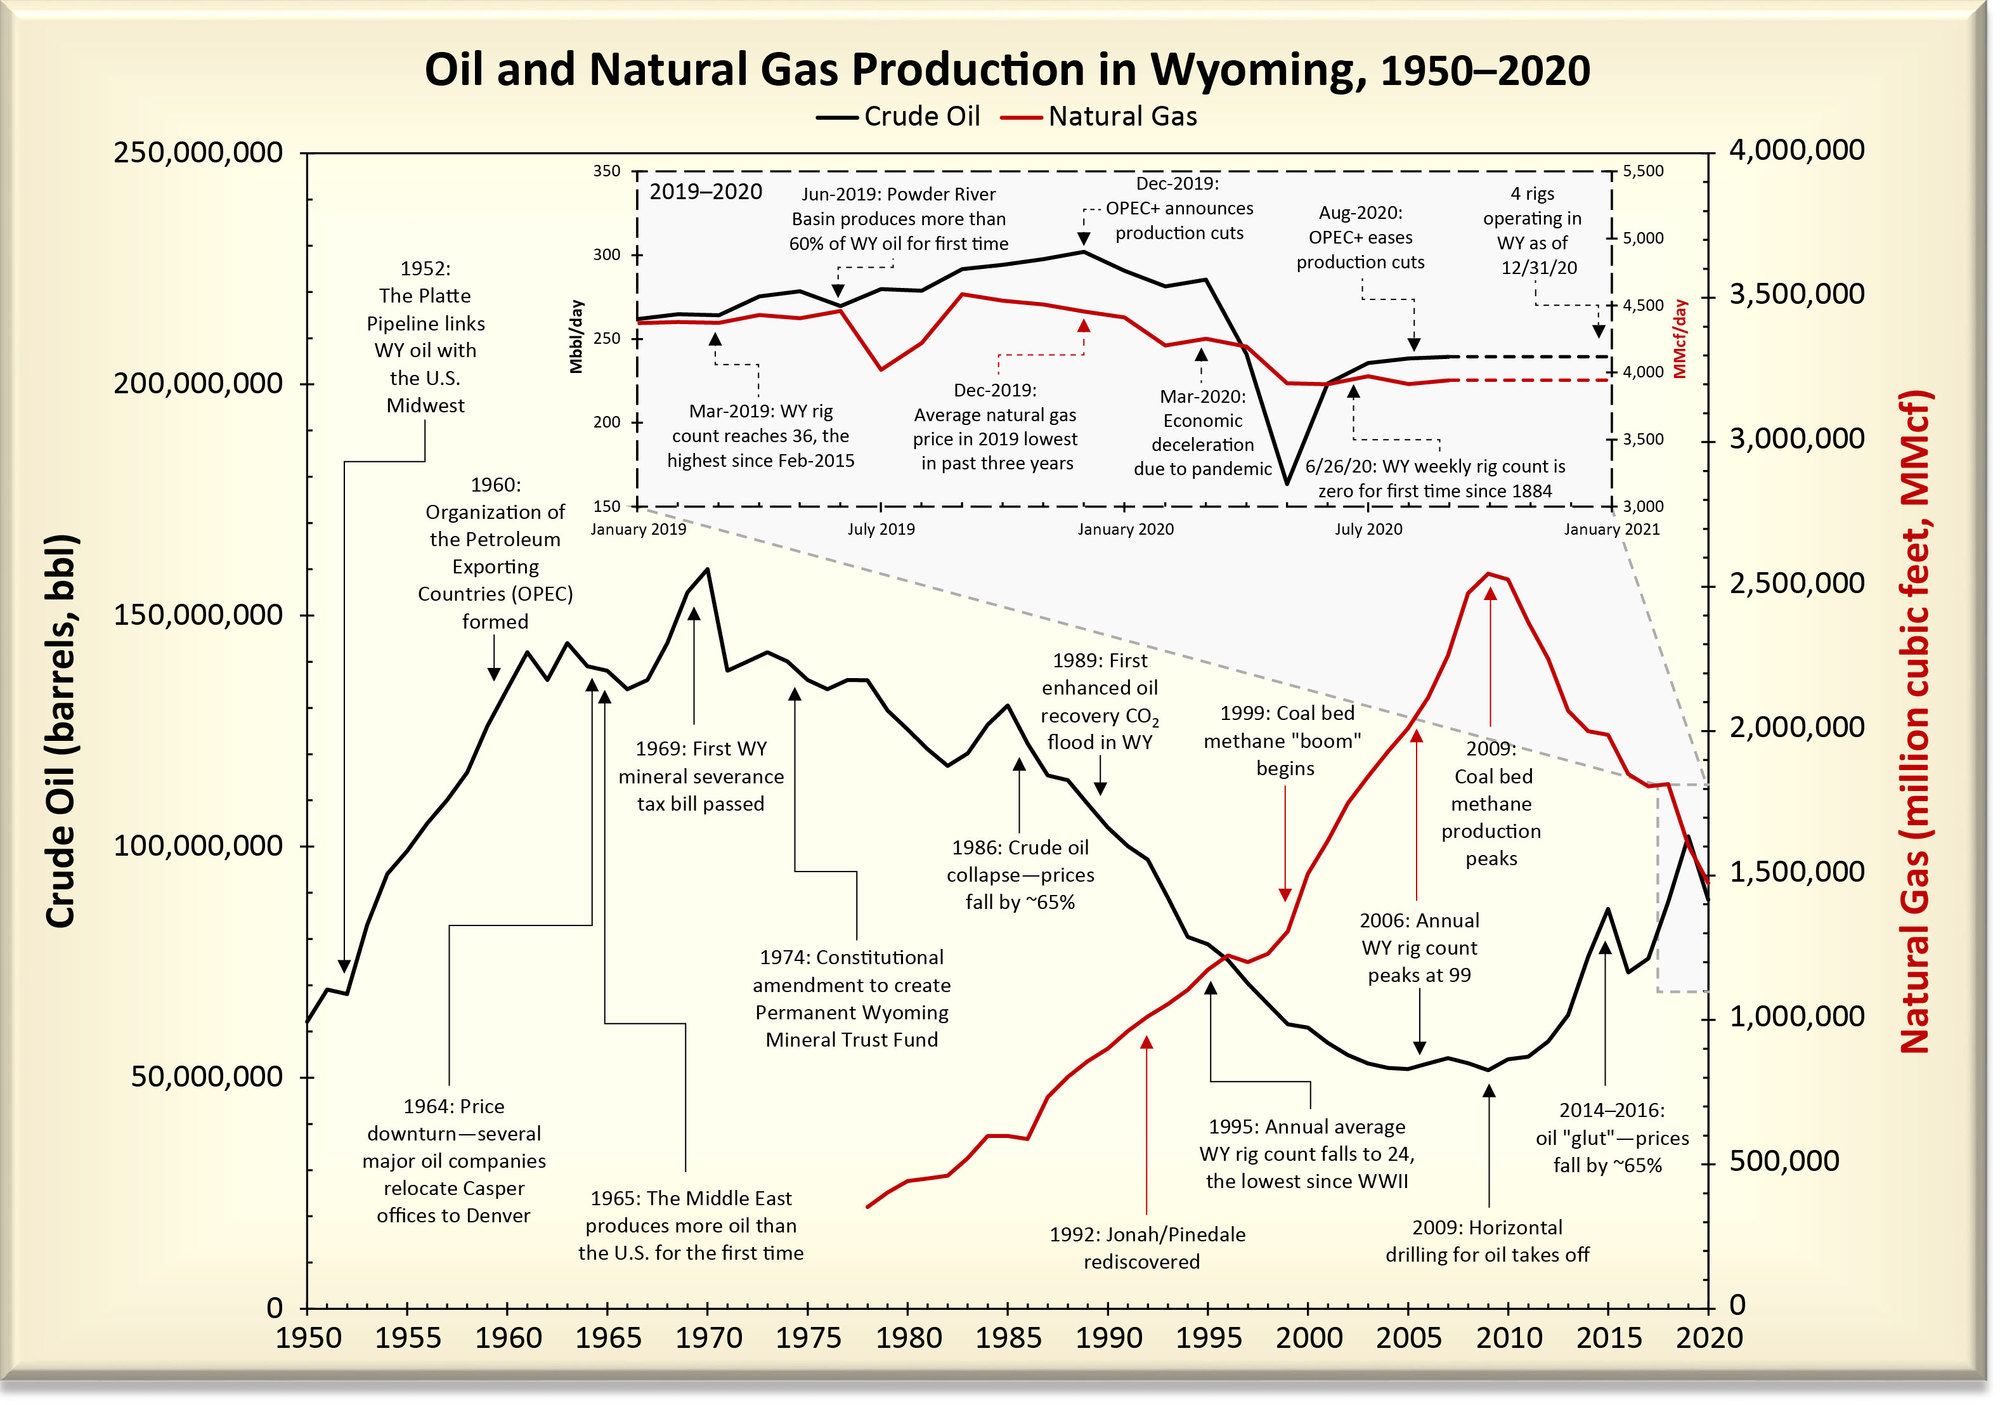 Wyoming Oil and Gas Summary Report